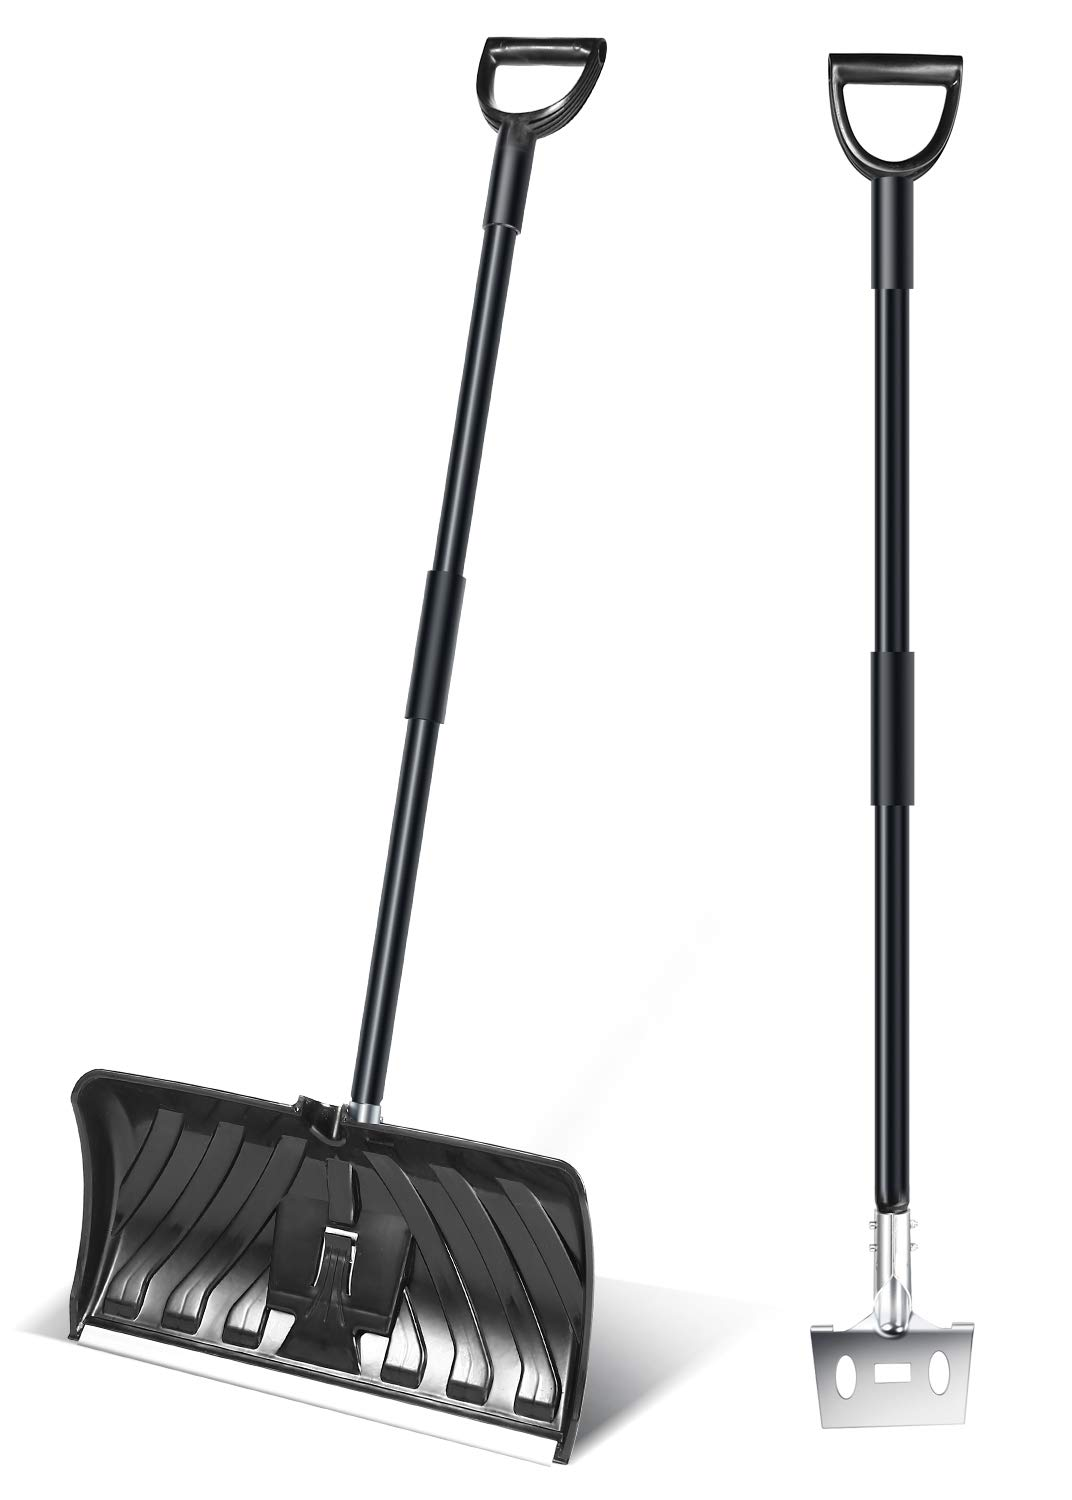 Ohuhu Multipurpose Snow Shovel Ice Scraper, 55-INCH Collapsible Snow Shovels for Snow Removal by Ohuhu